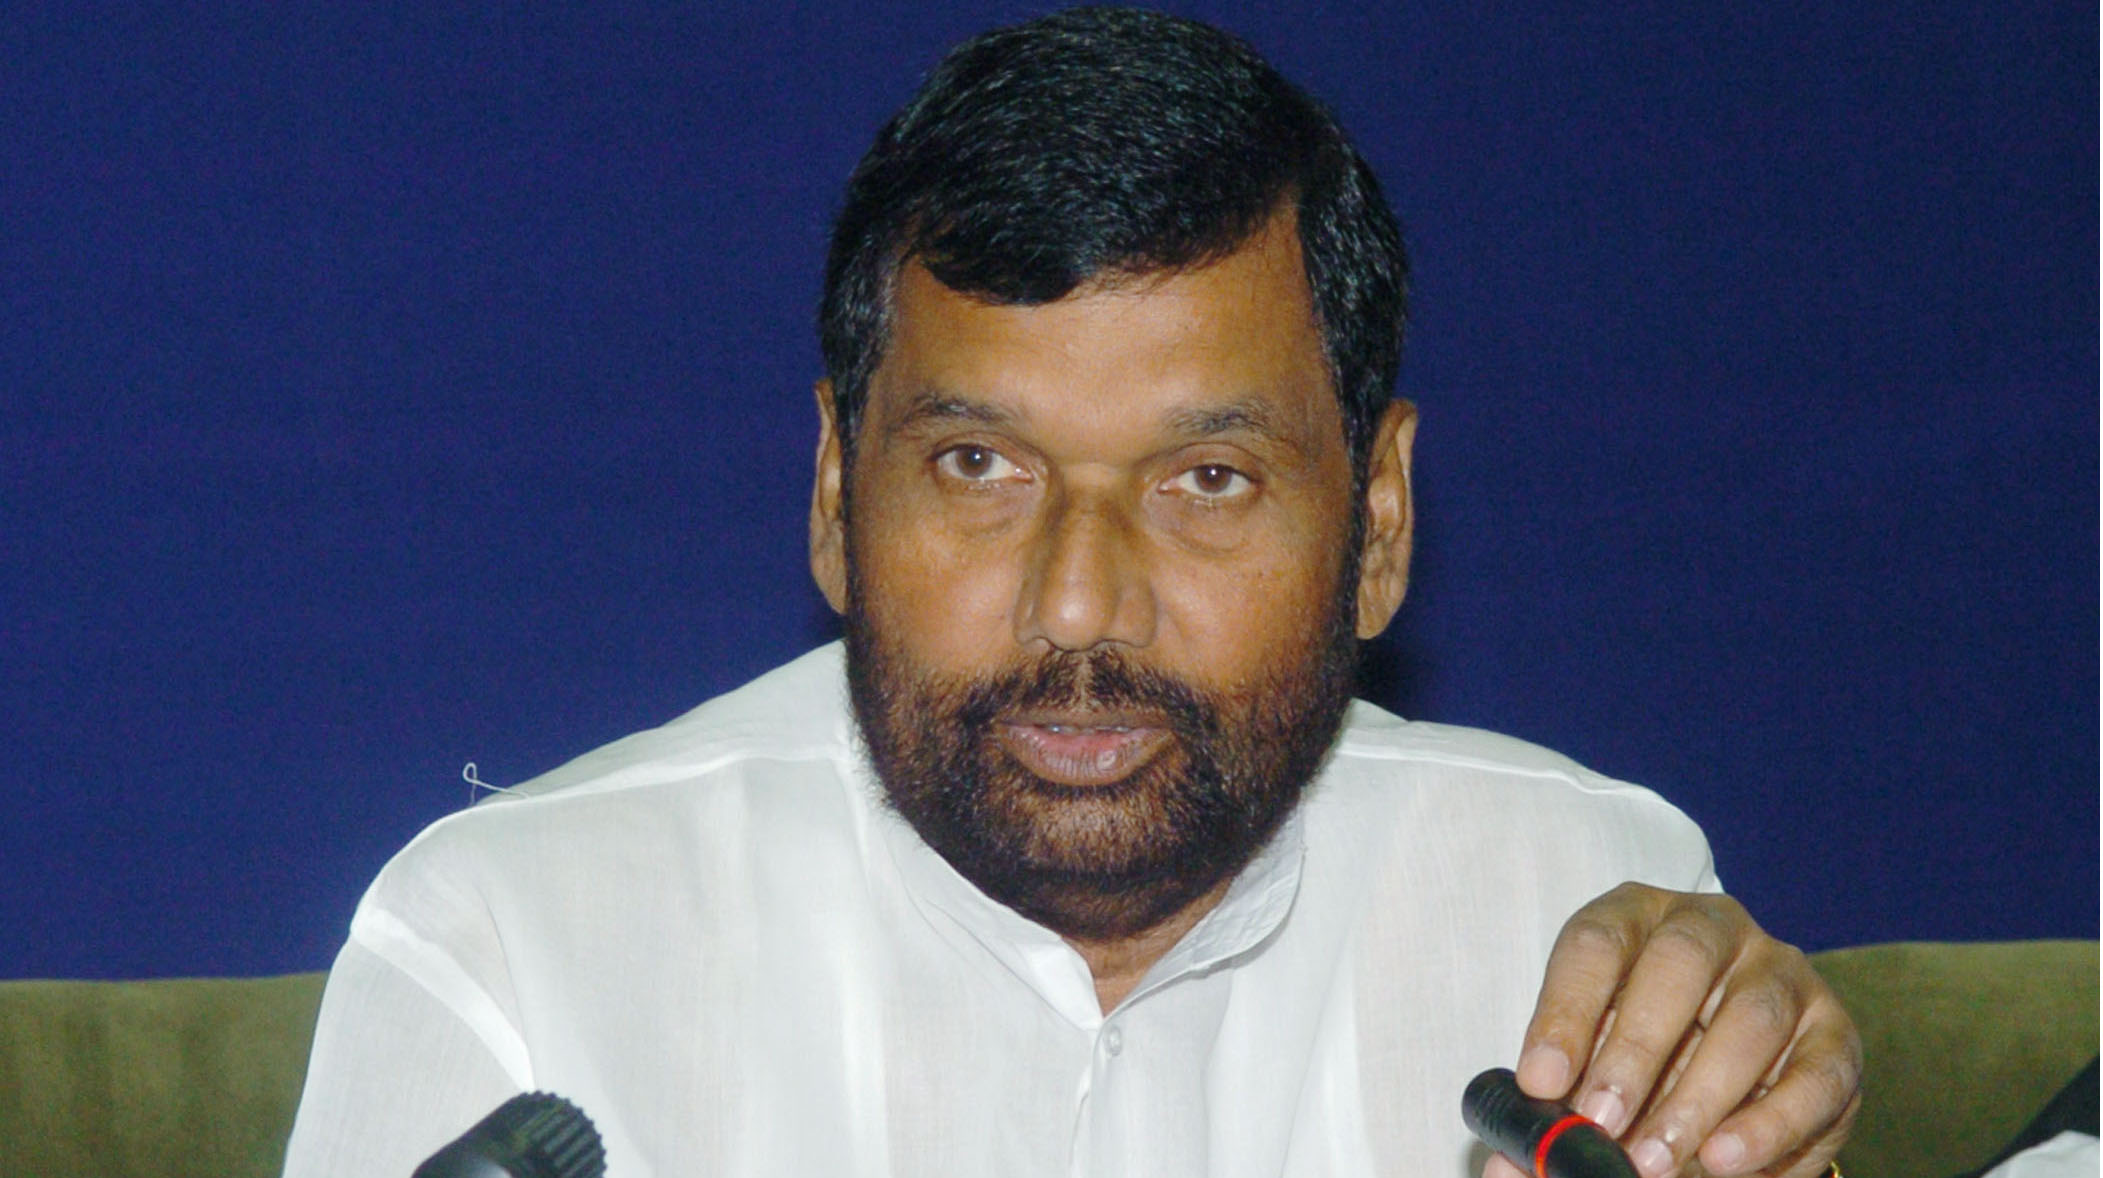 Taking service charge is 'Unfair trade practice', says Ram Vilas Paswan